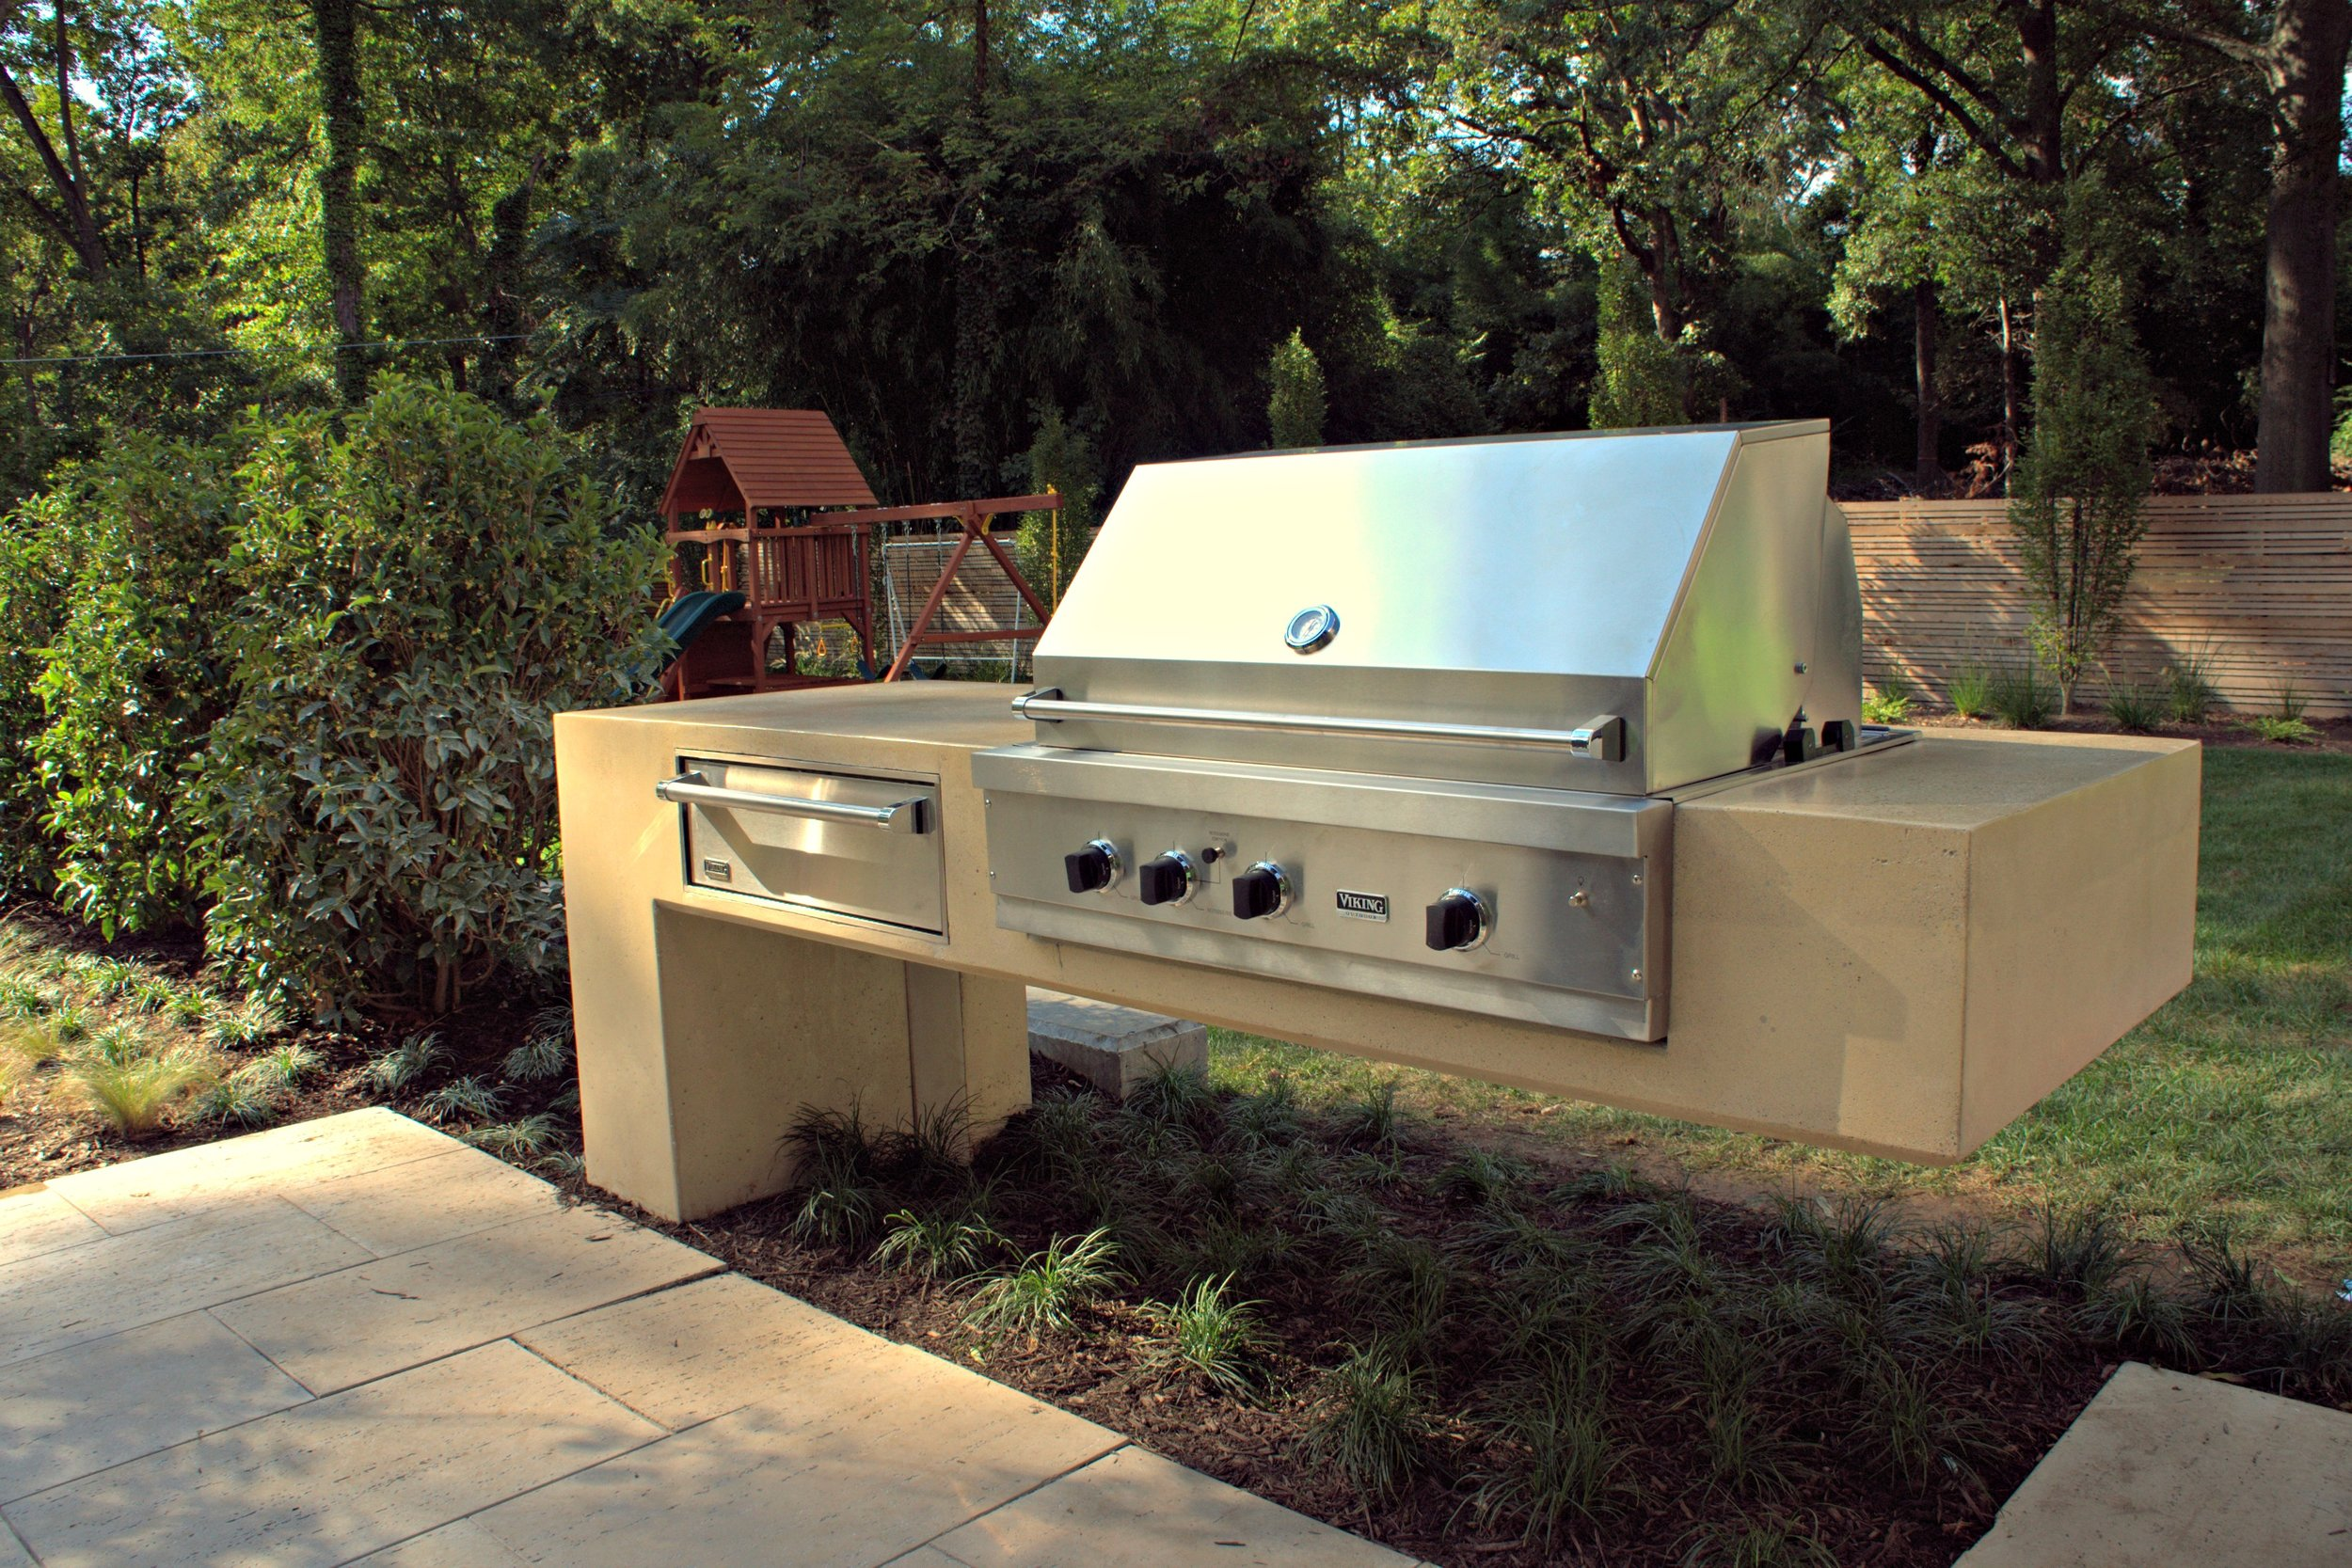 CANTILEVER grill station -